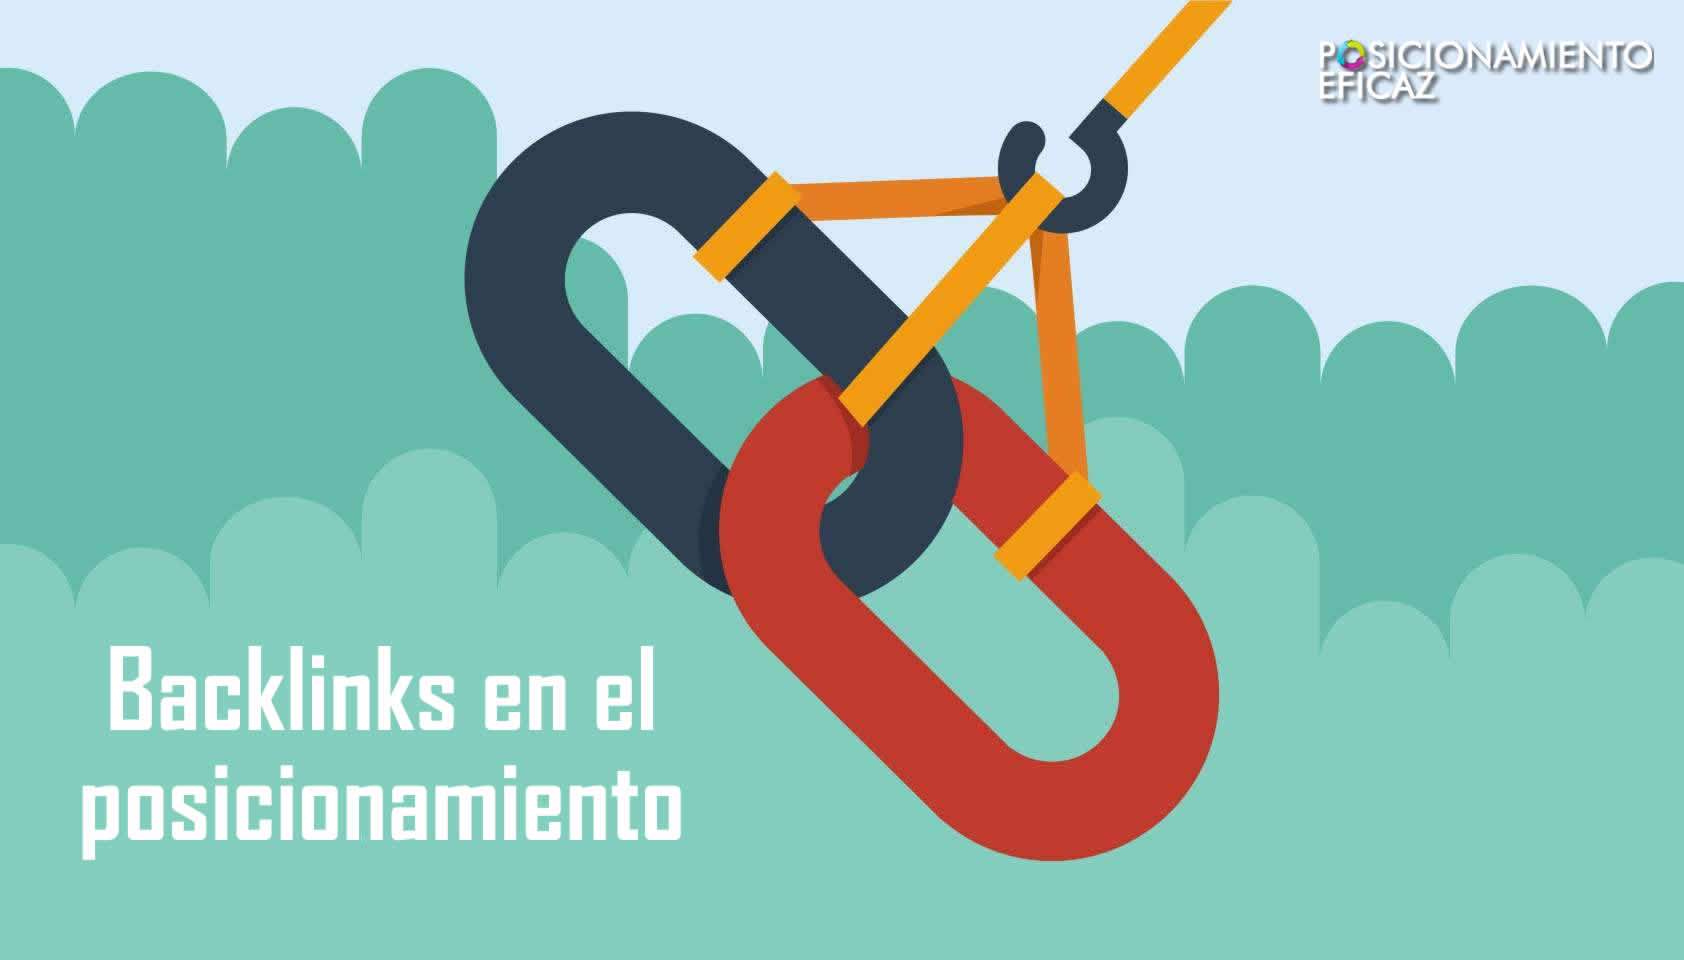 backlinks en el posicionamiento